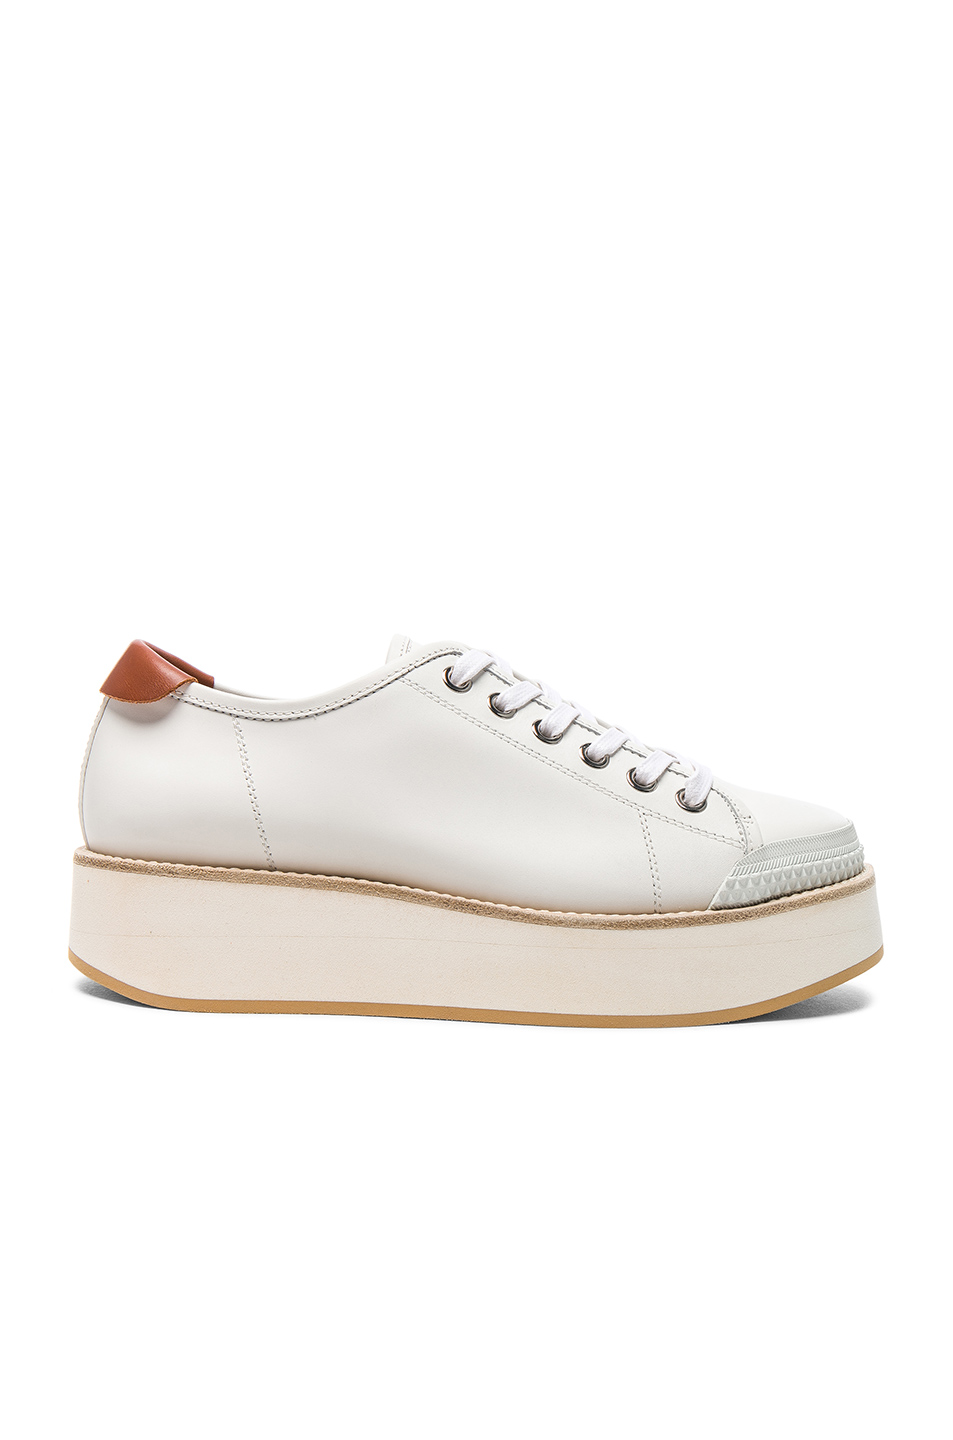 Flamingos Leather Tatum Sneakers in White